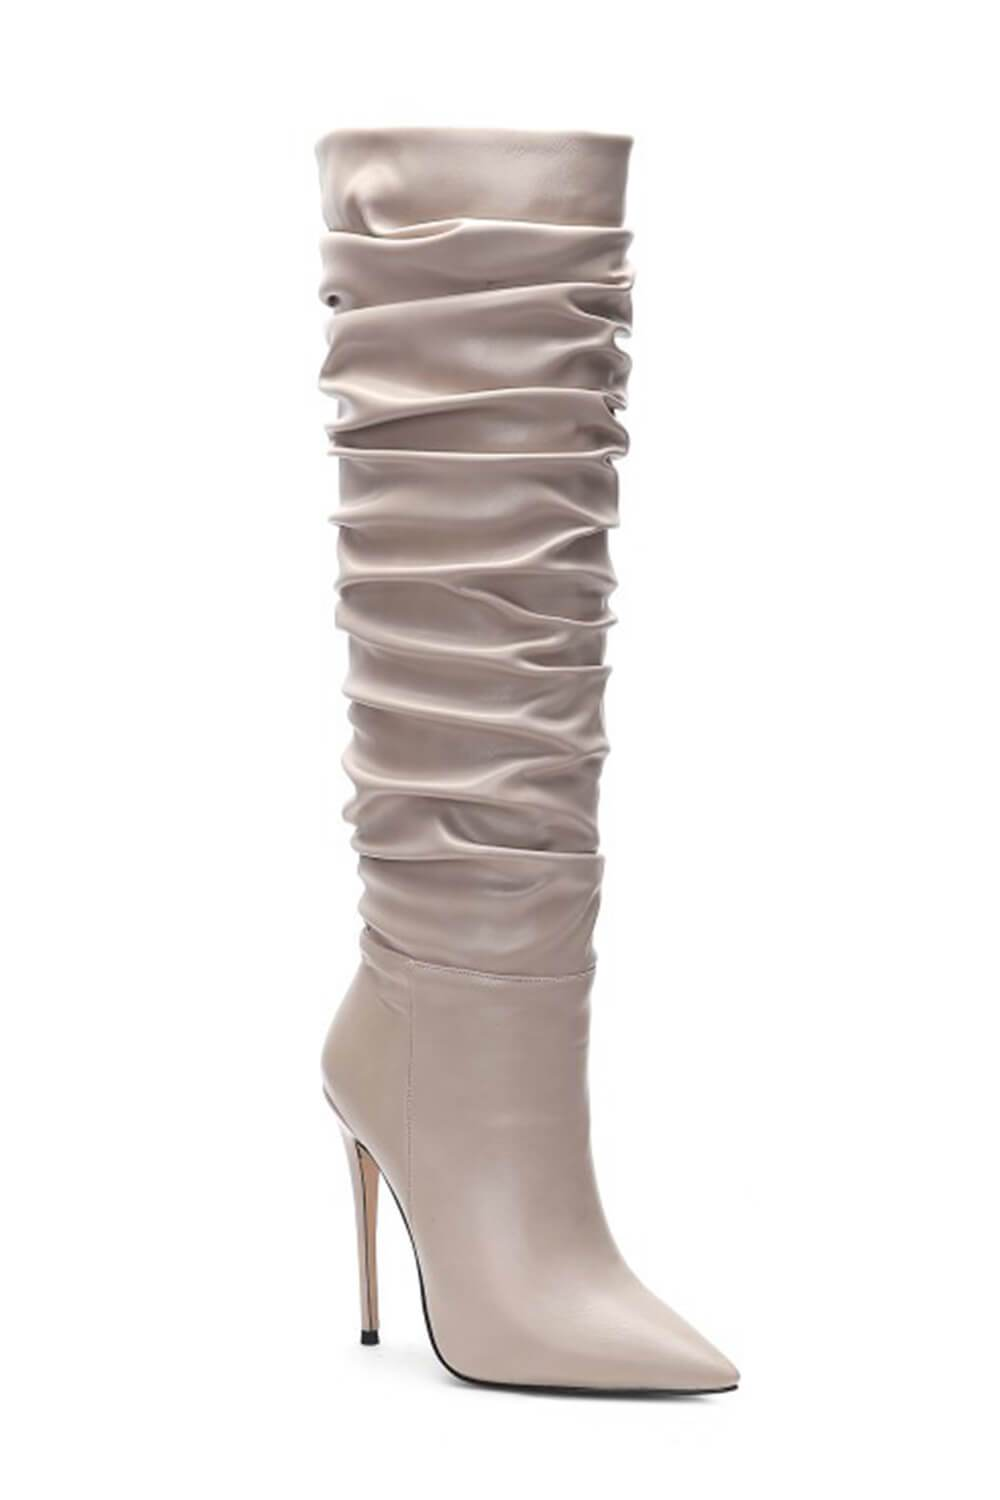 Beige Ruched Stiletto Knee High Boots